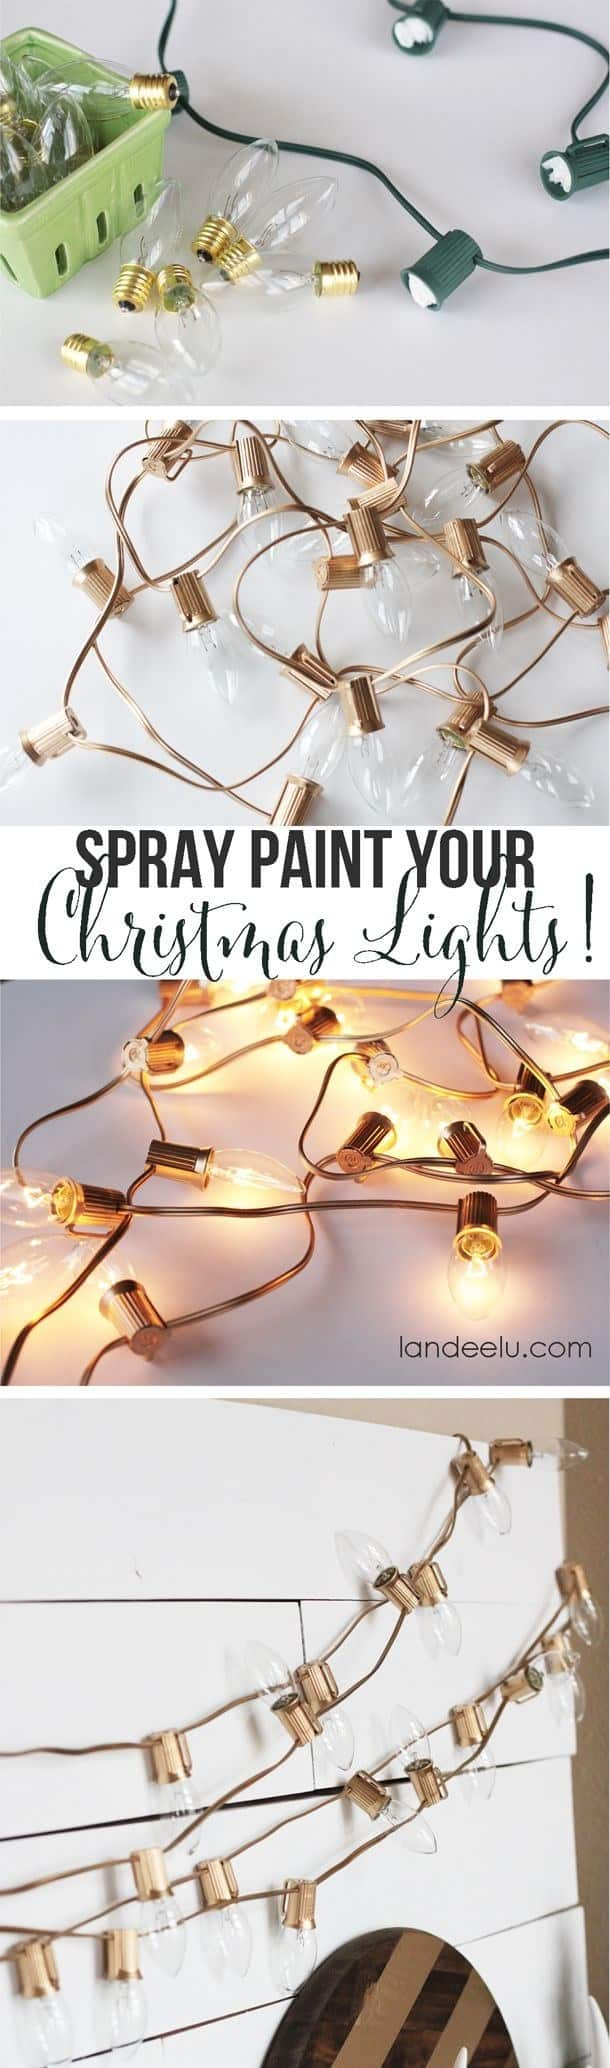 Ways You Can Spray Paint Old Objects In And Around Your Home To Make It Look